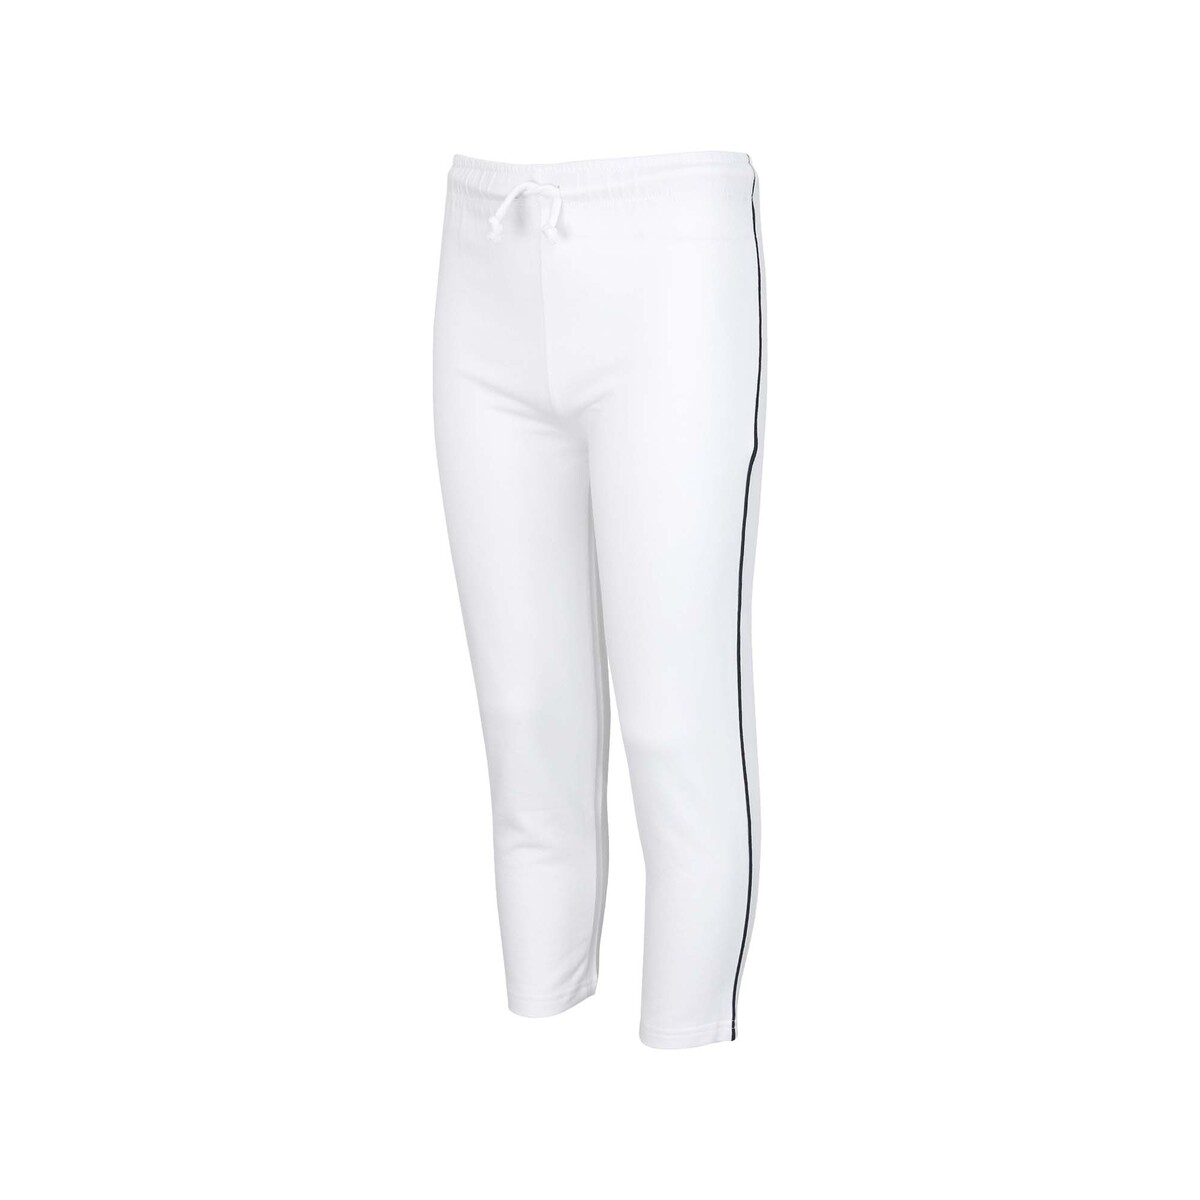 Eten Girls Uniform Track Pant U-WHT1 White 3-4Y